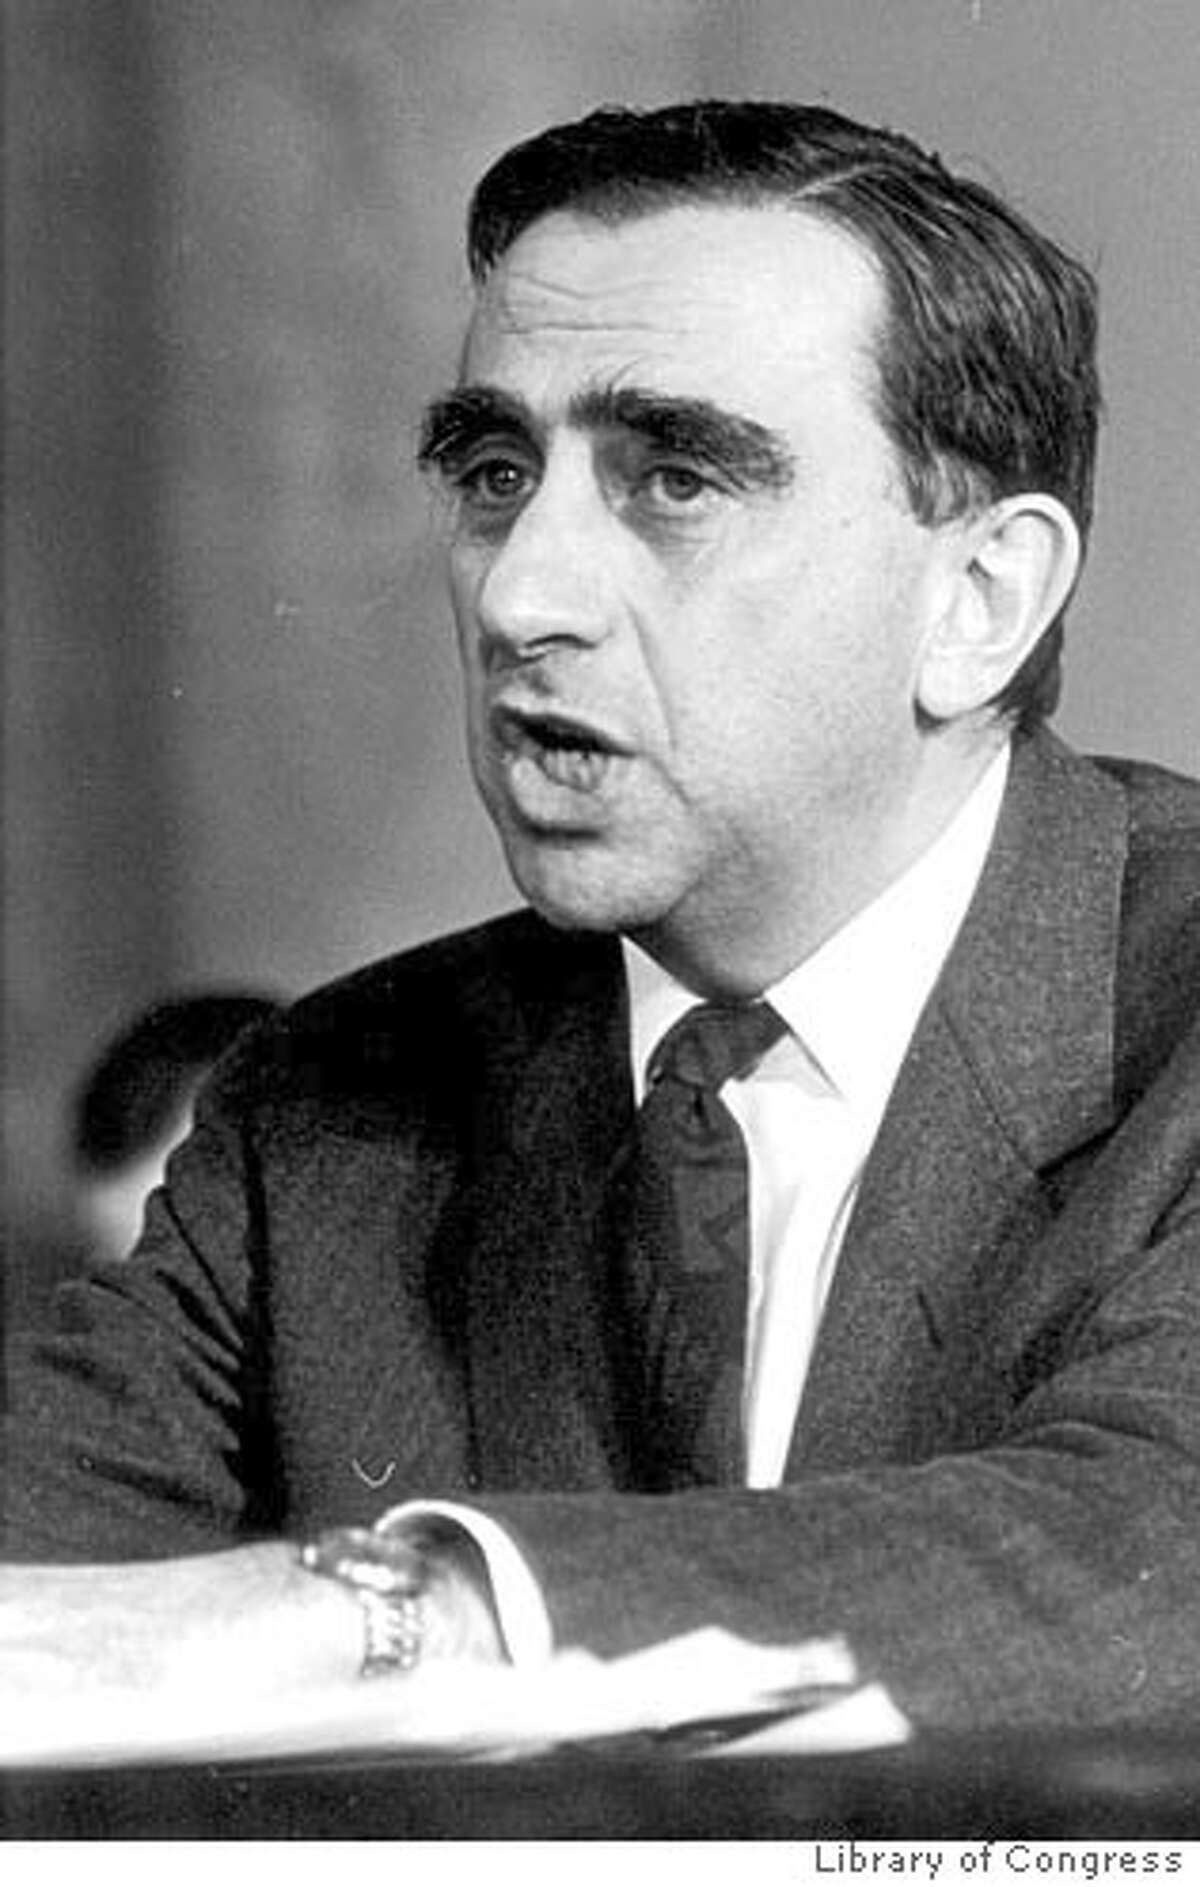 (NYT1) UNDATED -- April 23, 2001 -- SCI-TELLER-HBOMB-1- B&W -- After a heart attack, Dr. Edward Teller sat down with a friend and a tape recorder and discussed the secret history of the hydrogen bomb. The first design, he said,